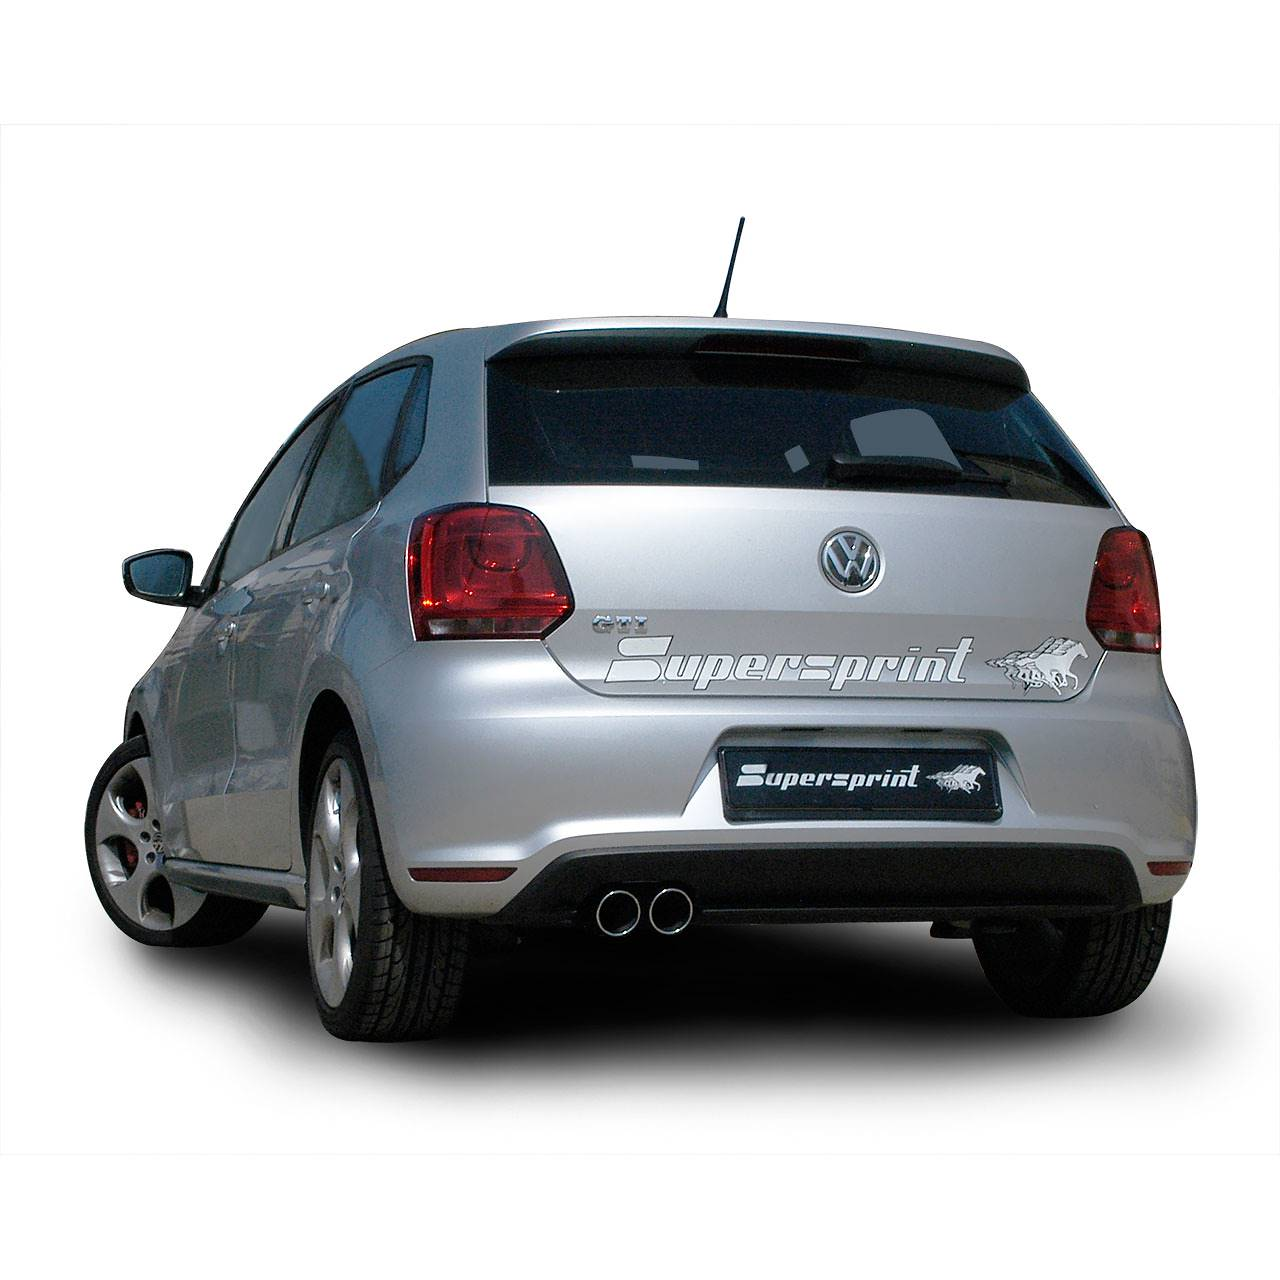 Volkswagen - VW POLO 6R GTI 1.4 TSI 3p./5p. (180 PS) 2010 ->